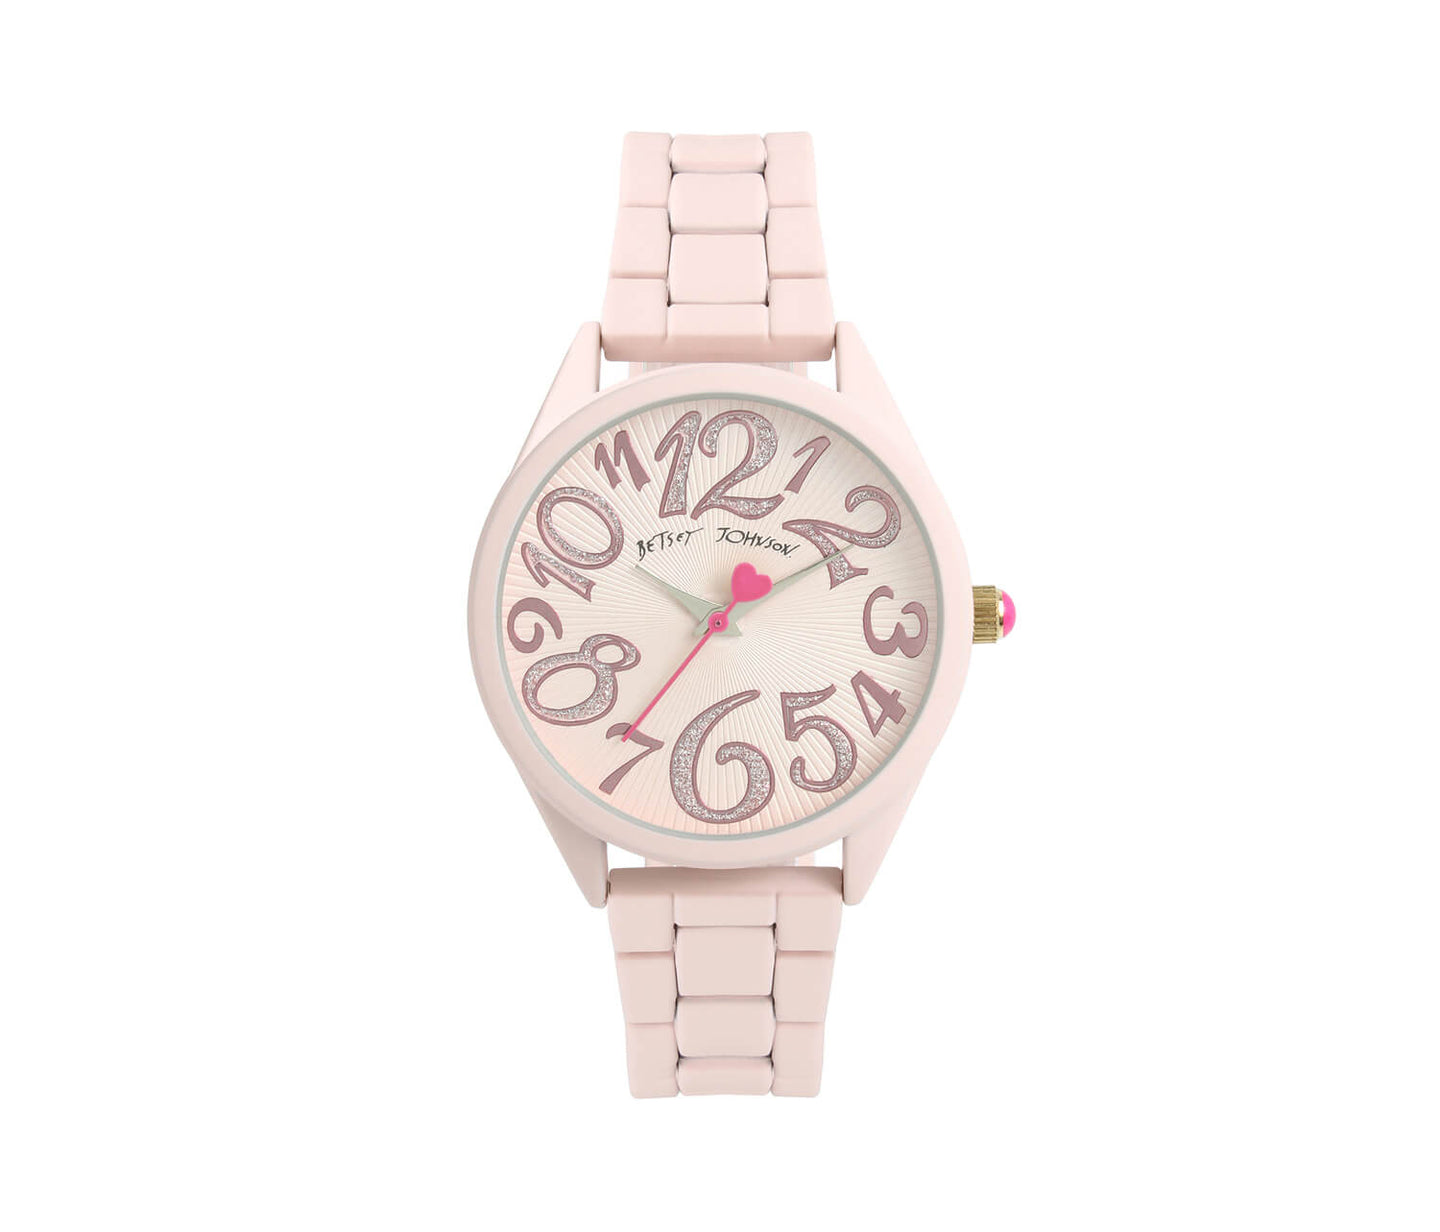 POWDER PUFF PINK WATCH PINK - JEWELRY - Betsey Johnson